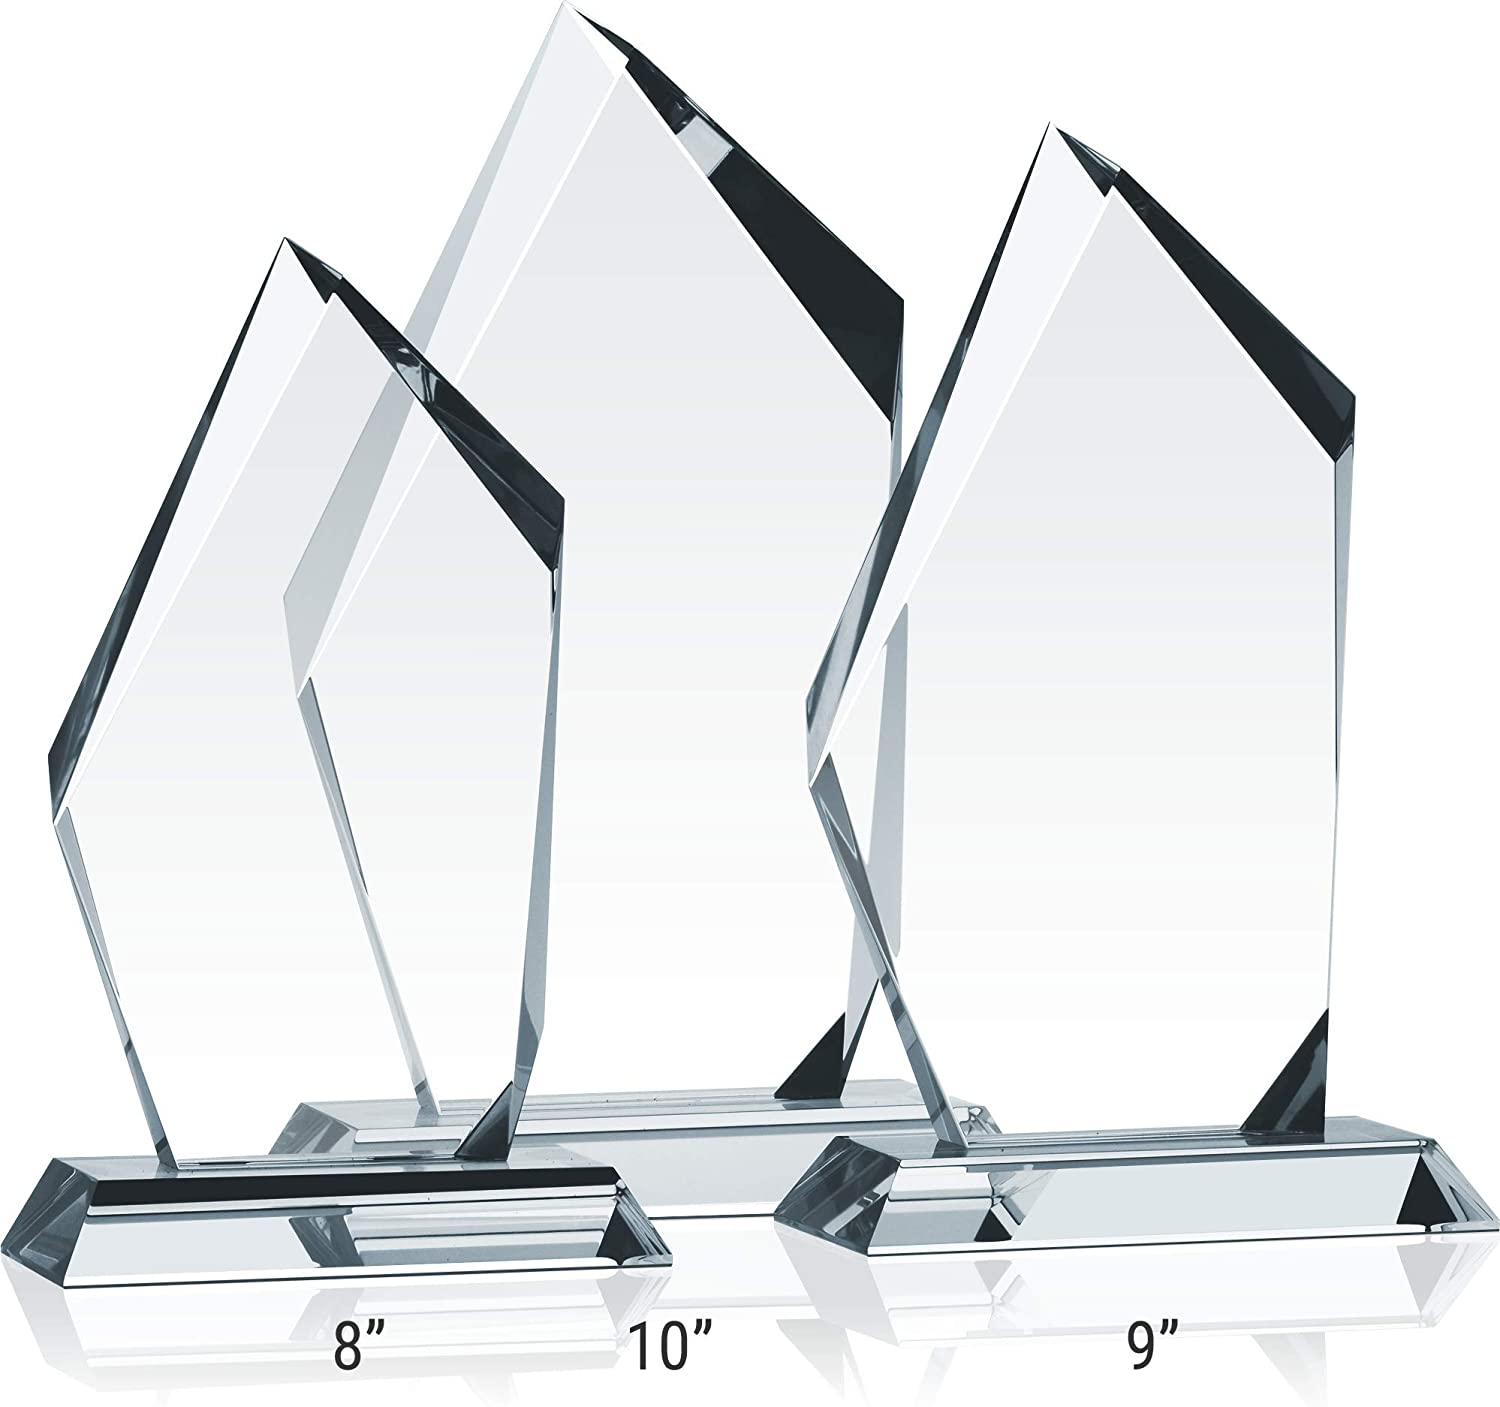 Unique Crystal Corporate Sales Recognition Award Personalized with Recipient and Award name S - 8 Custom Engrave Crystal Pinnacle Shaped Sales Award Trophy